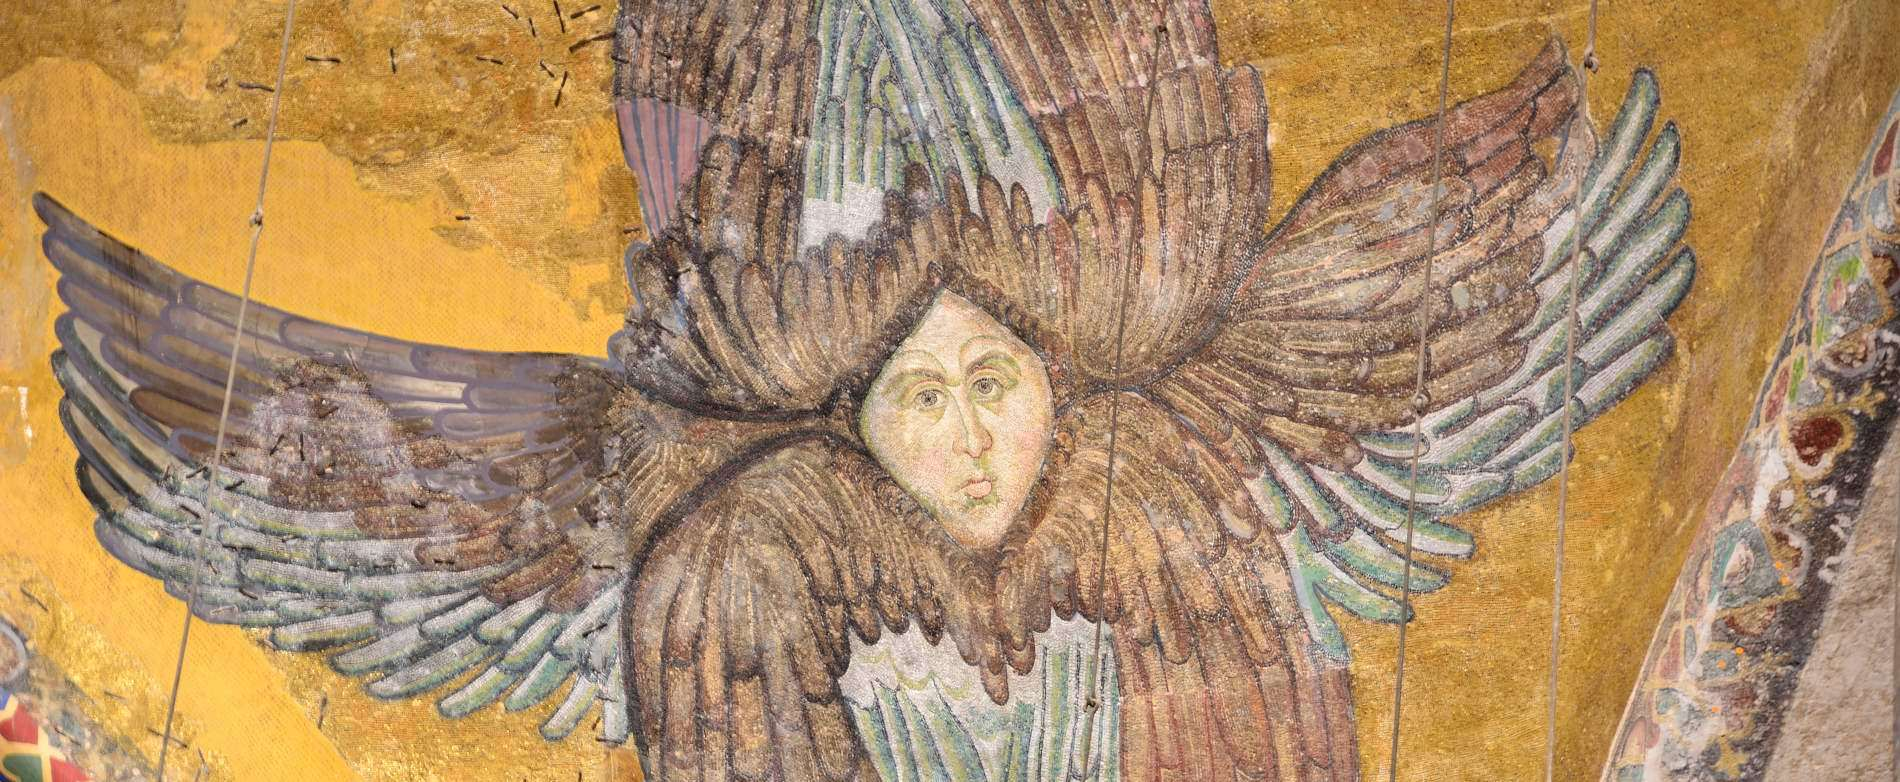 Seraphim Mosaic In Hagia Sophia Featured besides Hinduism Wallpaper Stars Phistars Worthy together with Hayes Grier On A Dirt Bike together with Gerard Butler Godman Thumb X moreover . on god made the stars